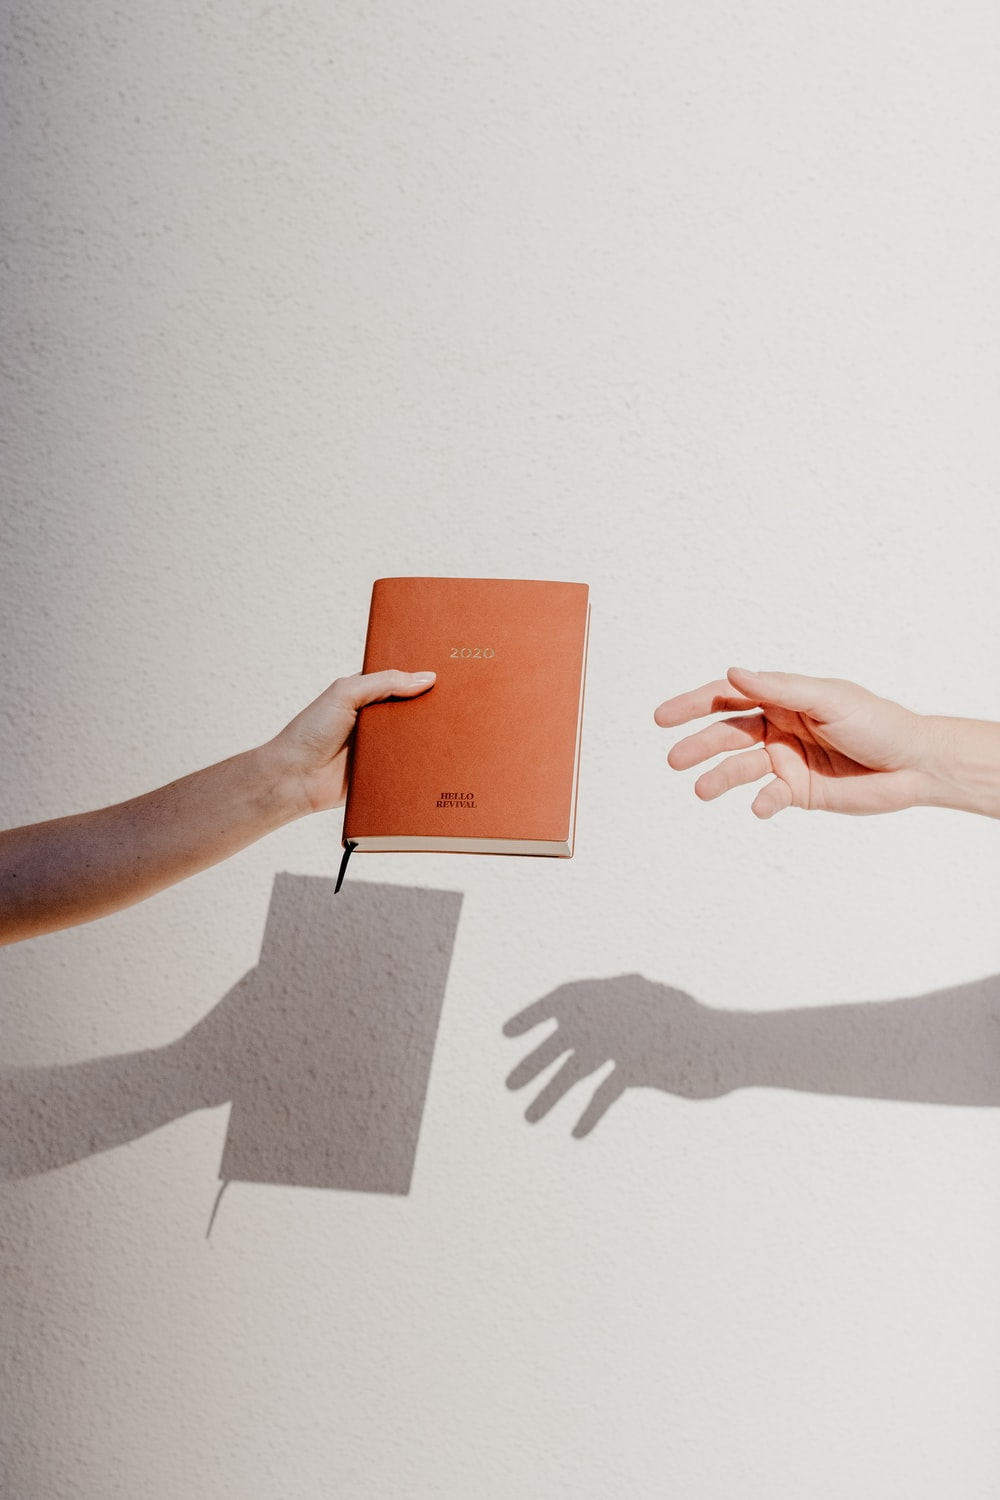 person holding orange book